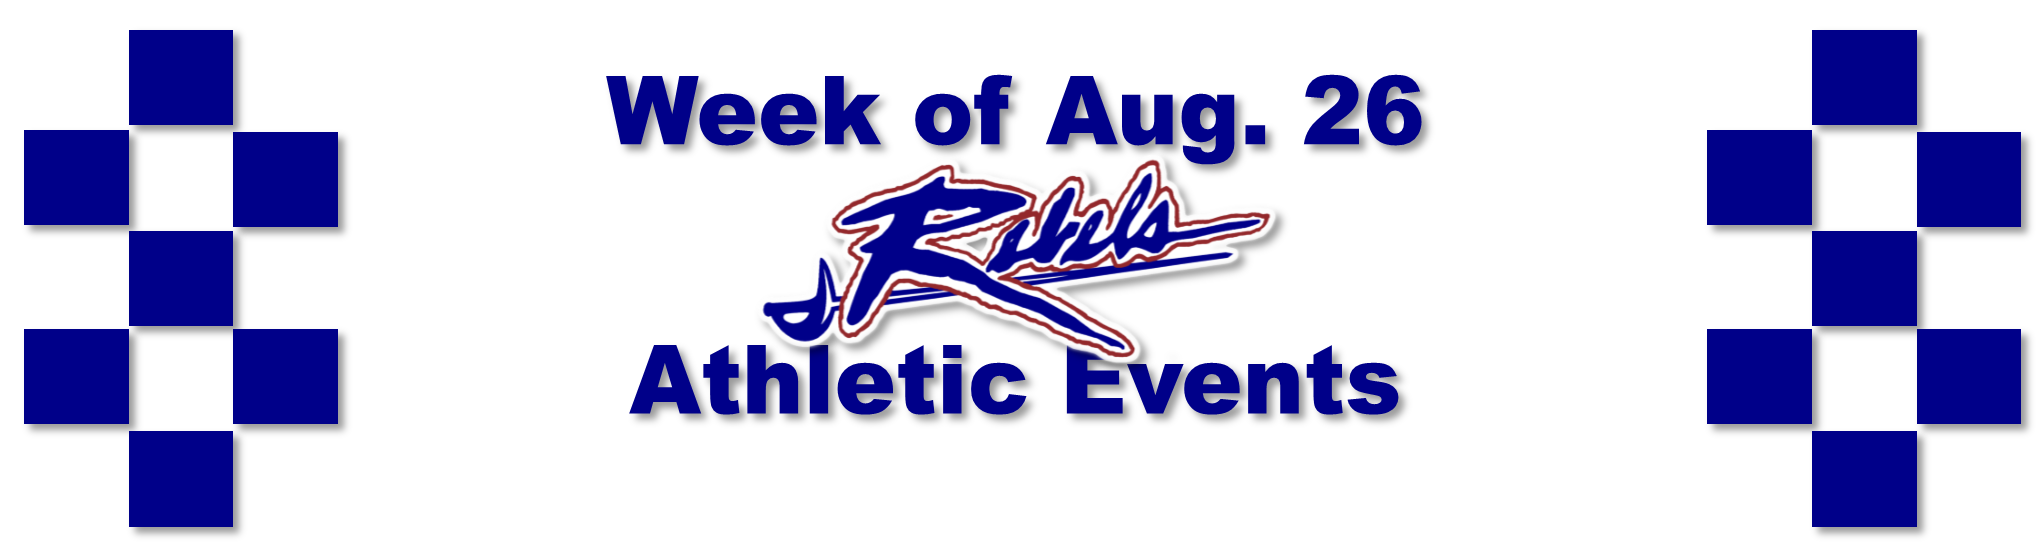 Week of Aug. 26 Athletic Events